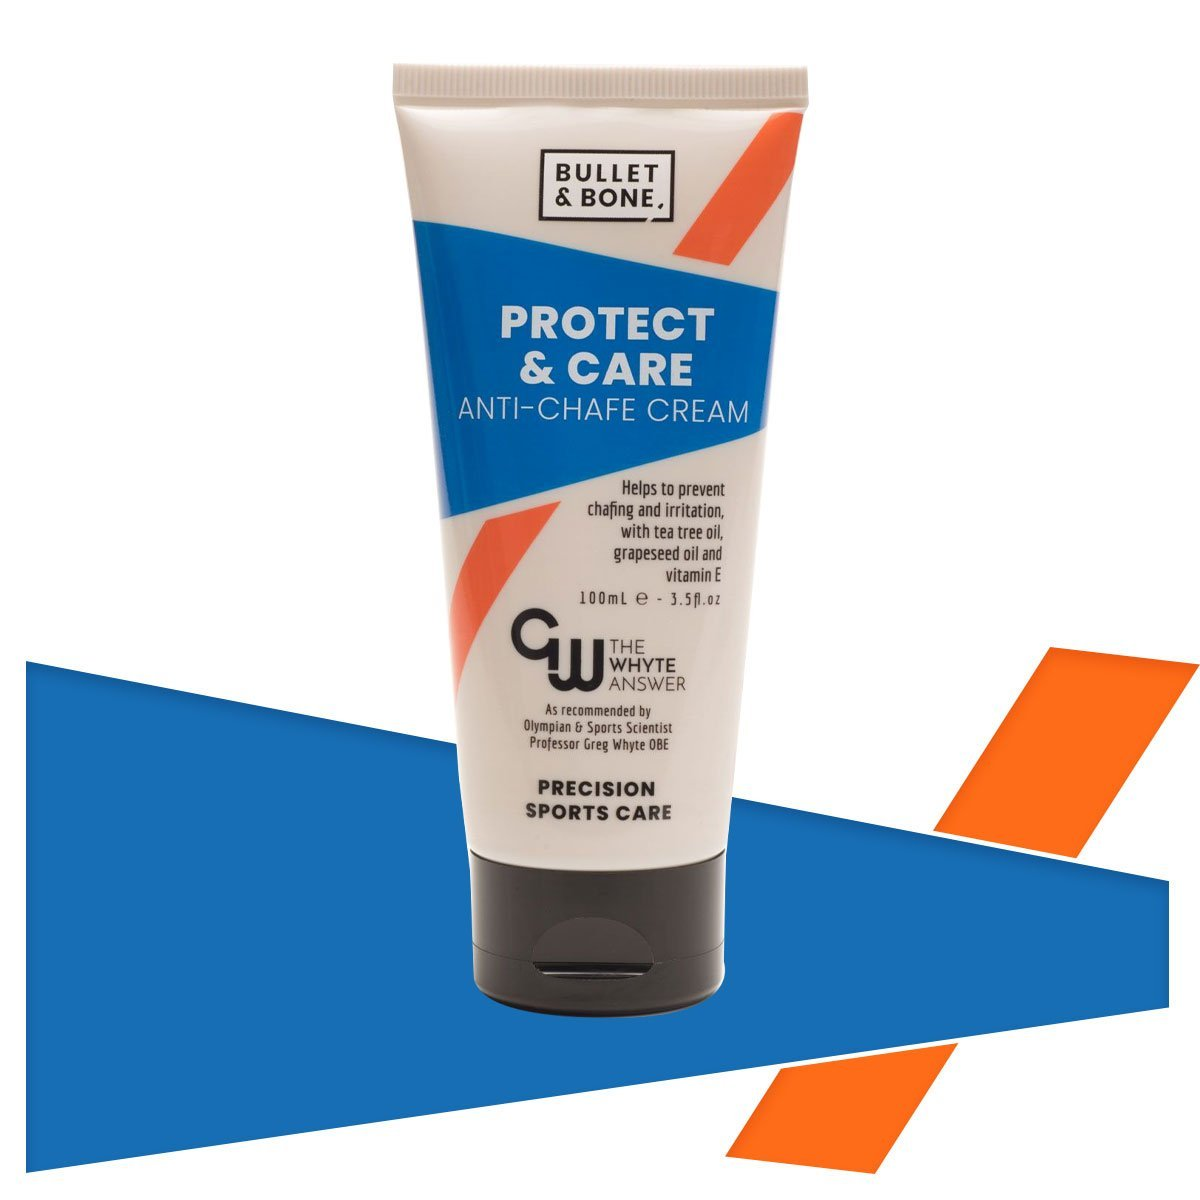 Bullet & Bone Protect and Care Anti-Chafe Cream - www.therugbyshop.com